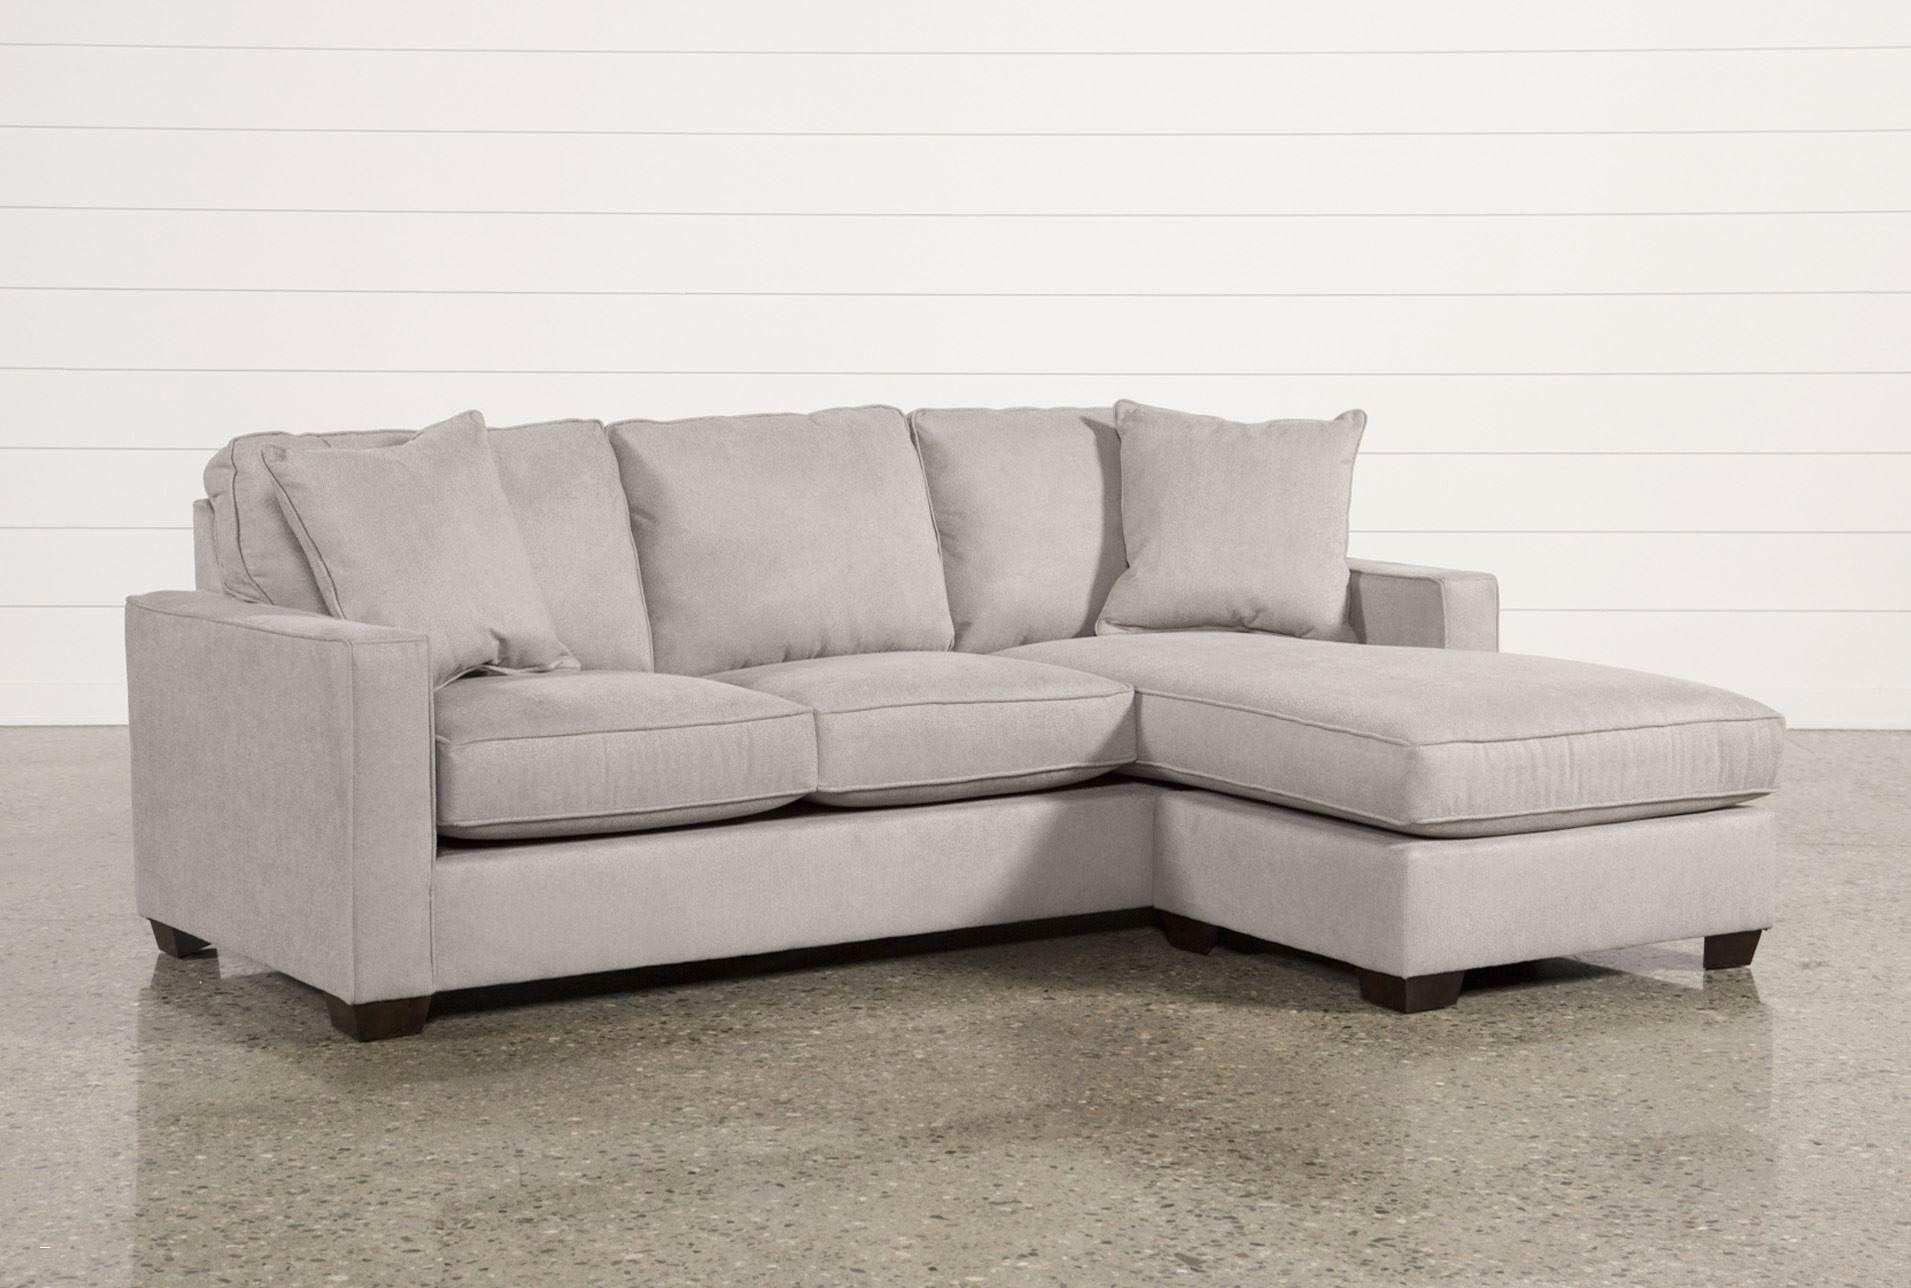 50 Best Sectional sofas with Recliners 50 s